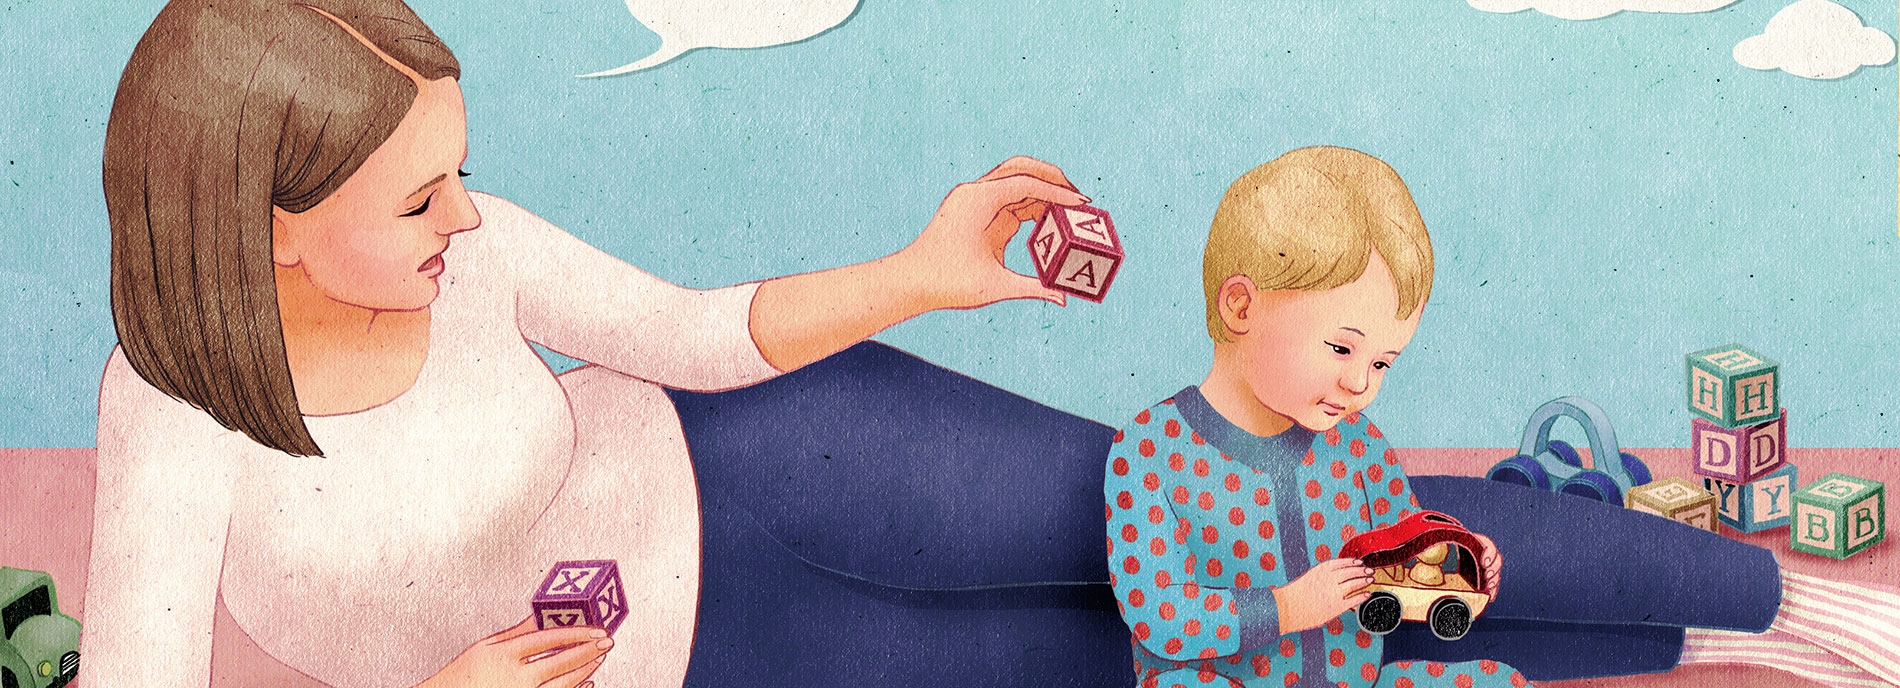 The Social Network How Everyday >> The Social Network How Everyday Interactions Shape Autism